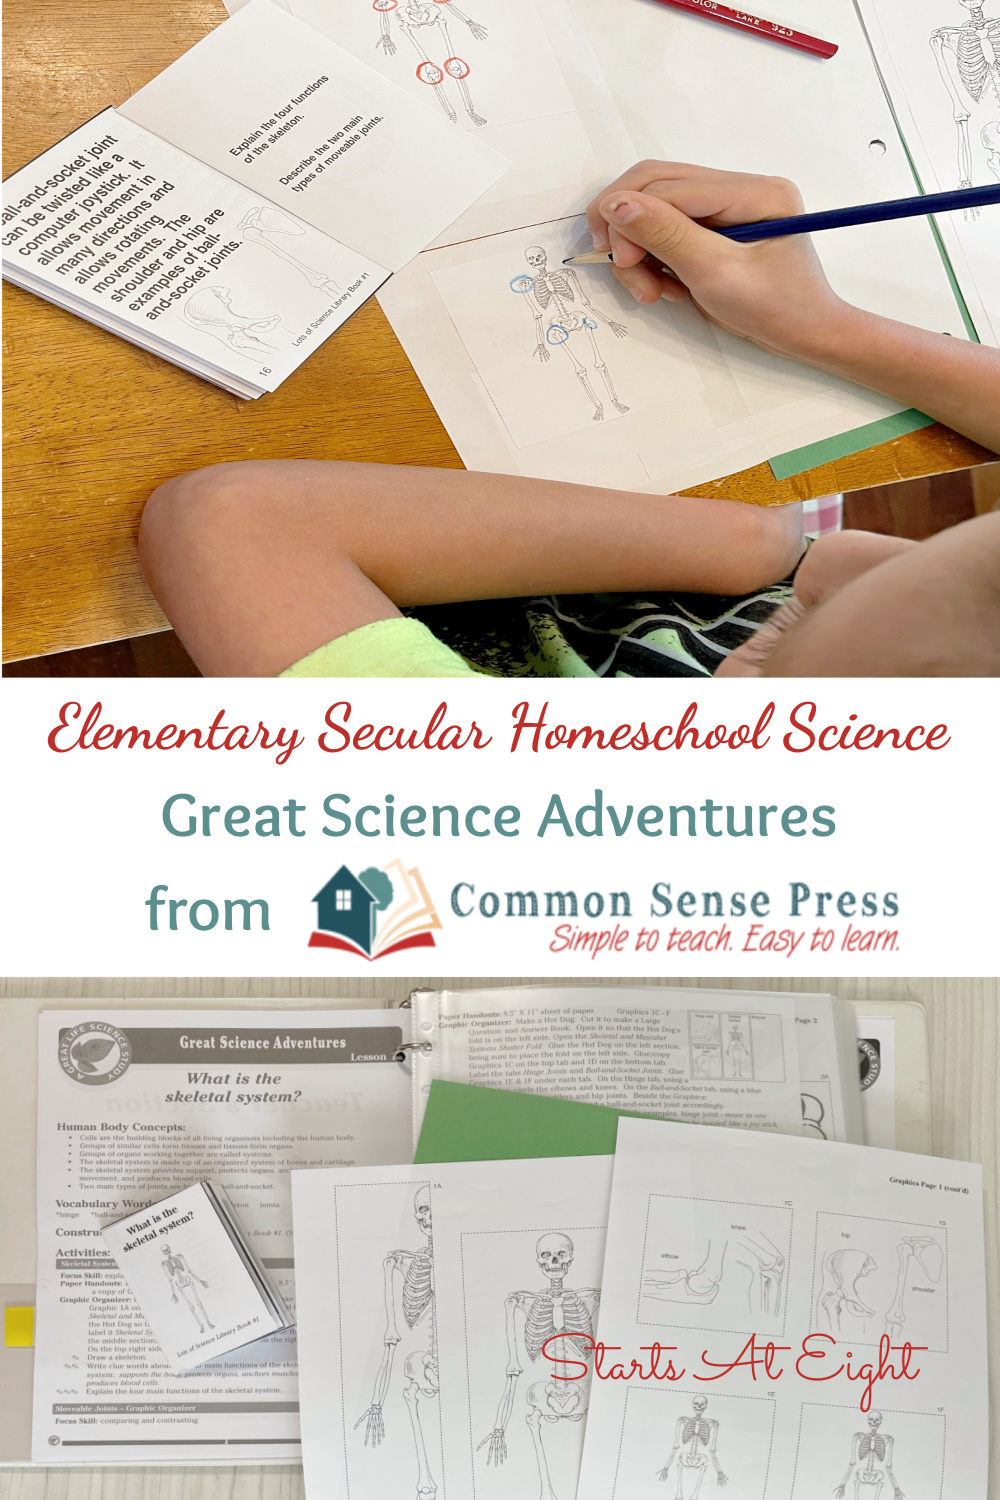 Great Science Adventures from Common Sense Press are easy to use, elementary secular homeschool science programs that can be used with multiple ages! This is a review of the Discovering the Human Body and Senses from Starts At Eight